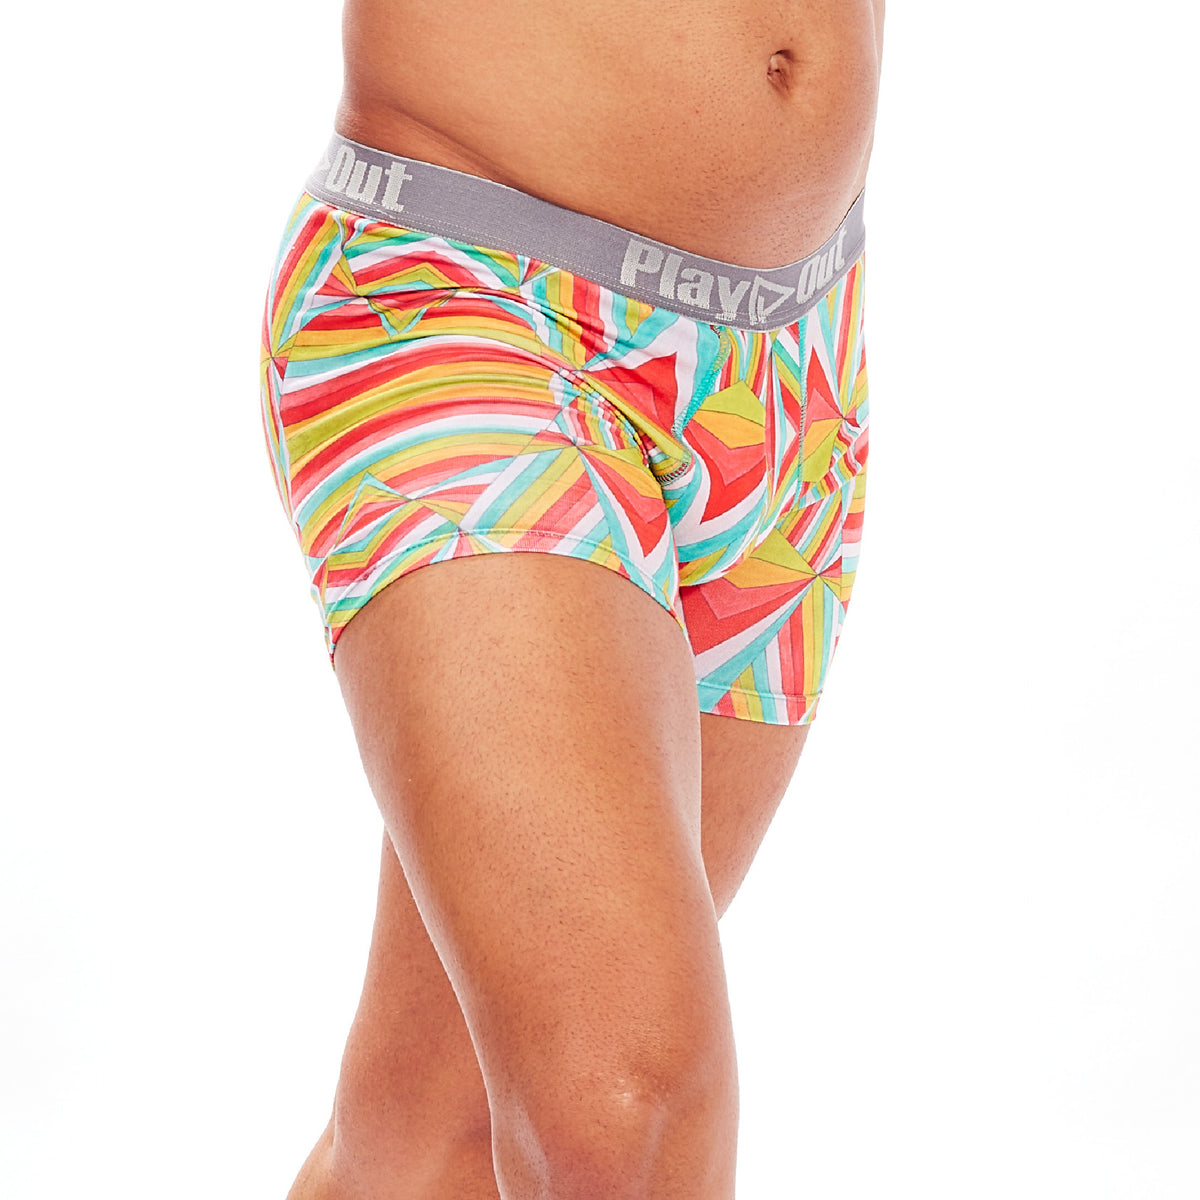 Play Out Apparel gender equal Midi Trunk underwear in Mazie Multi color print S-5X front